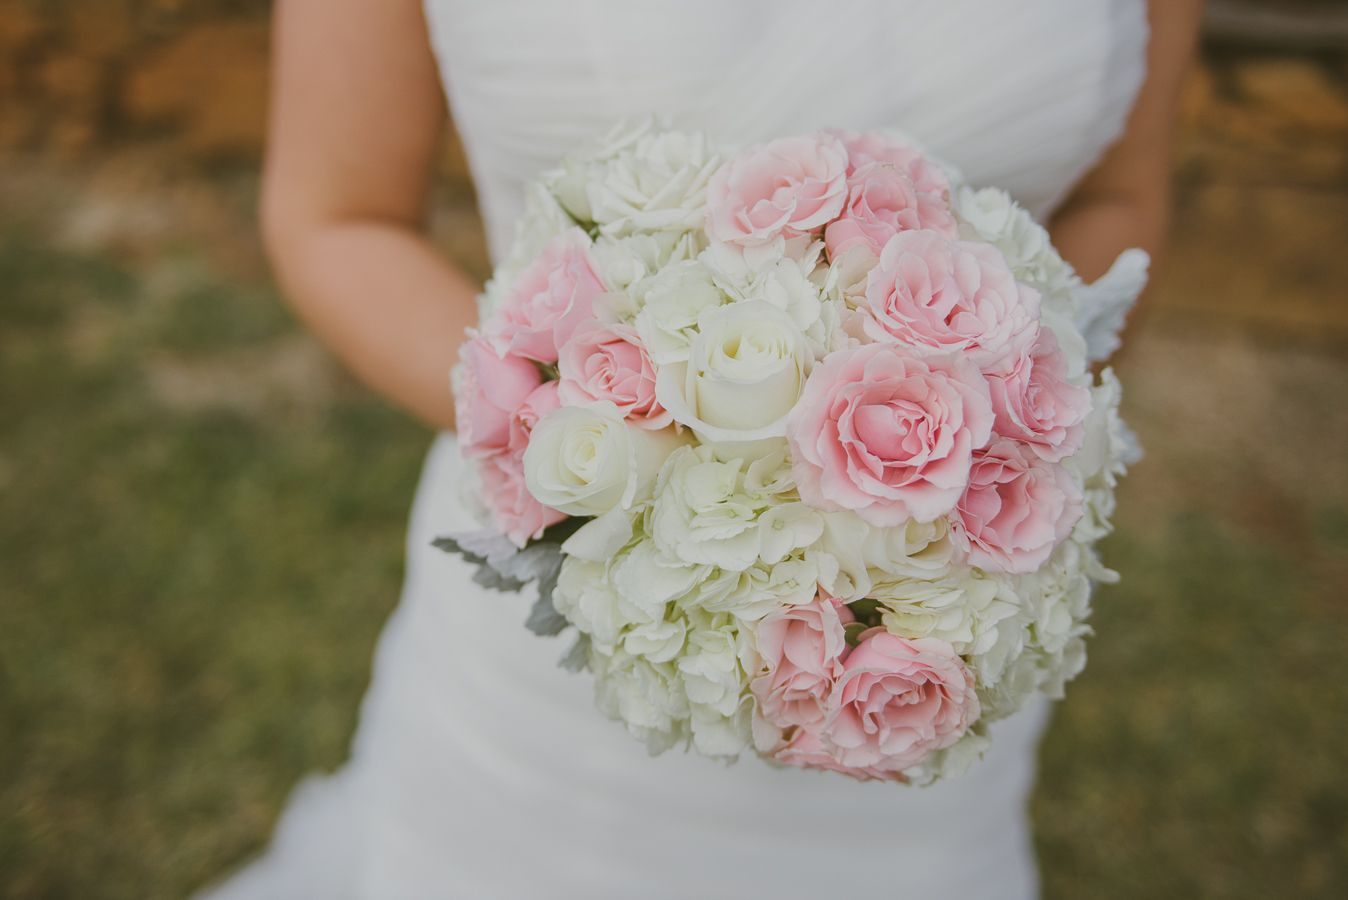 Last minute diy wedding decorations  Wedding Flowers Soft and Rustic at Early Mountain Vineyards in